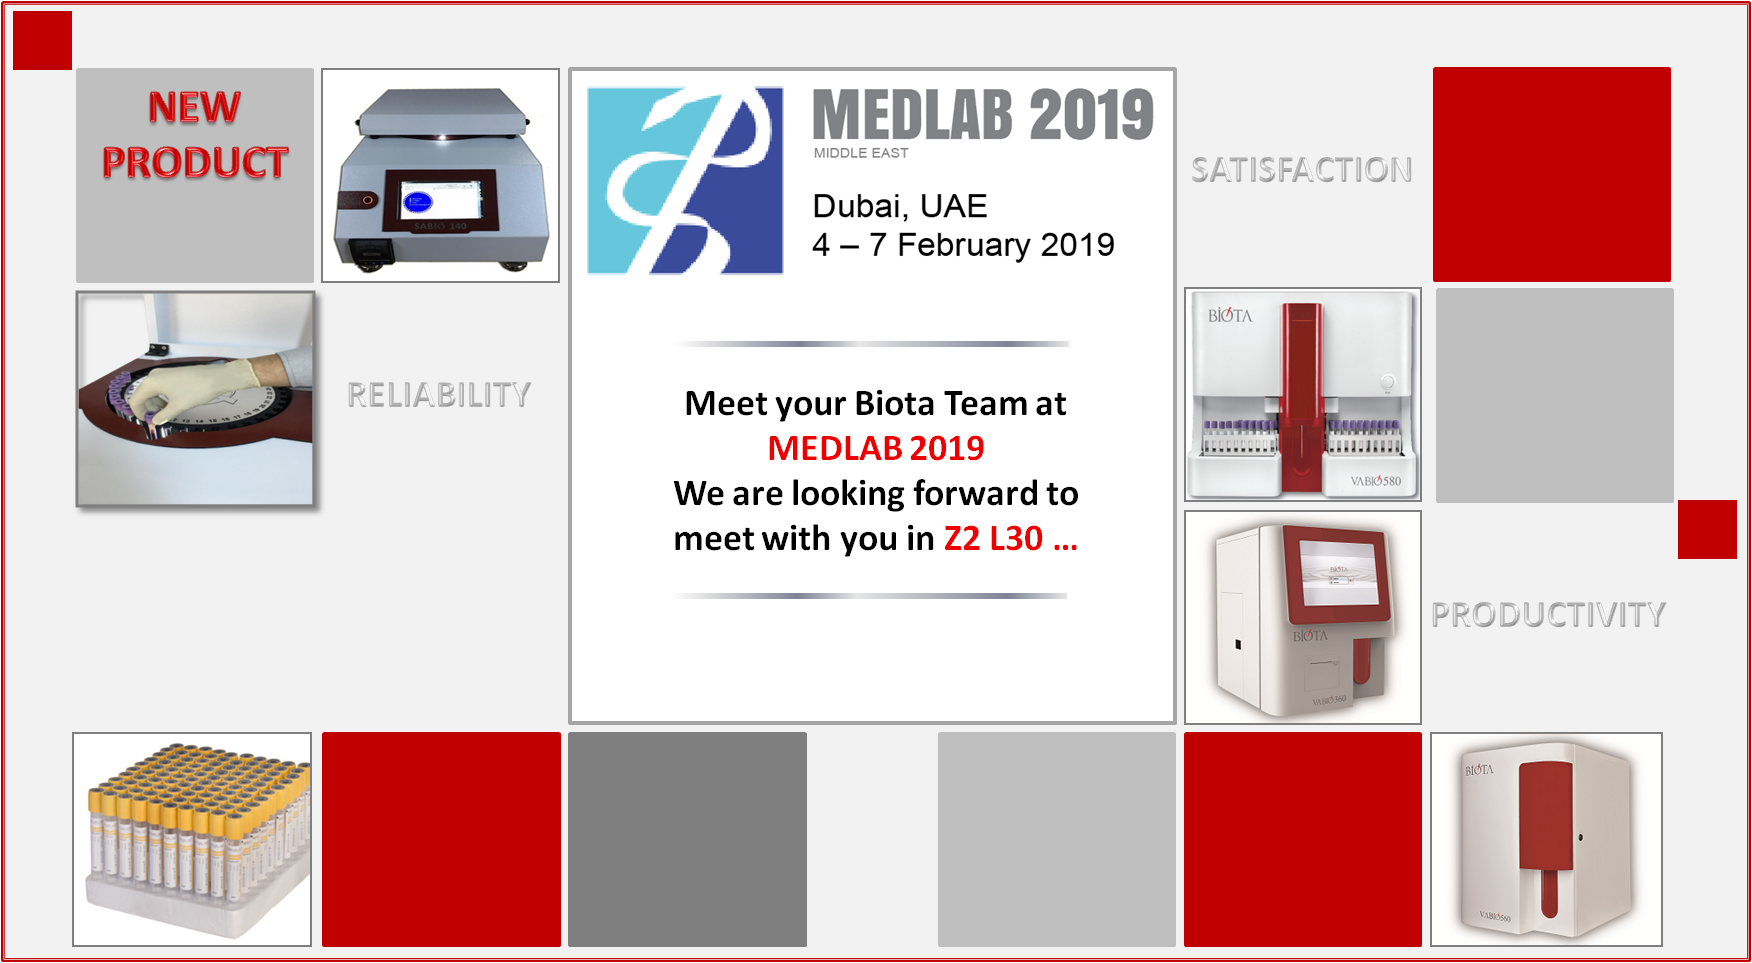 MEET YOUR BIOTA TEAM AT MEDLAB 2019...